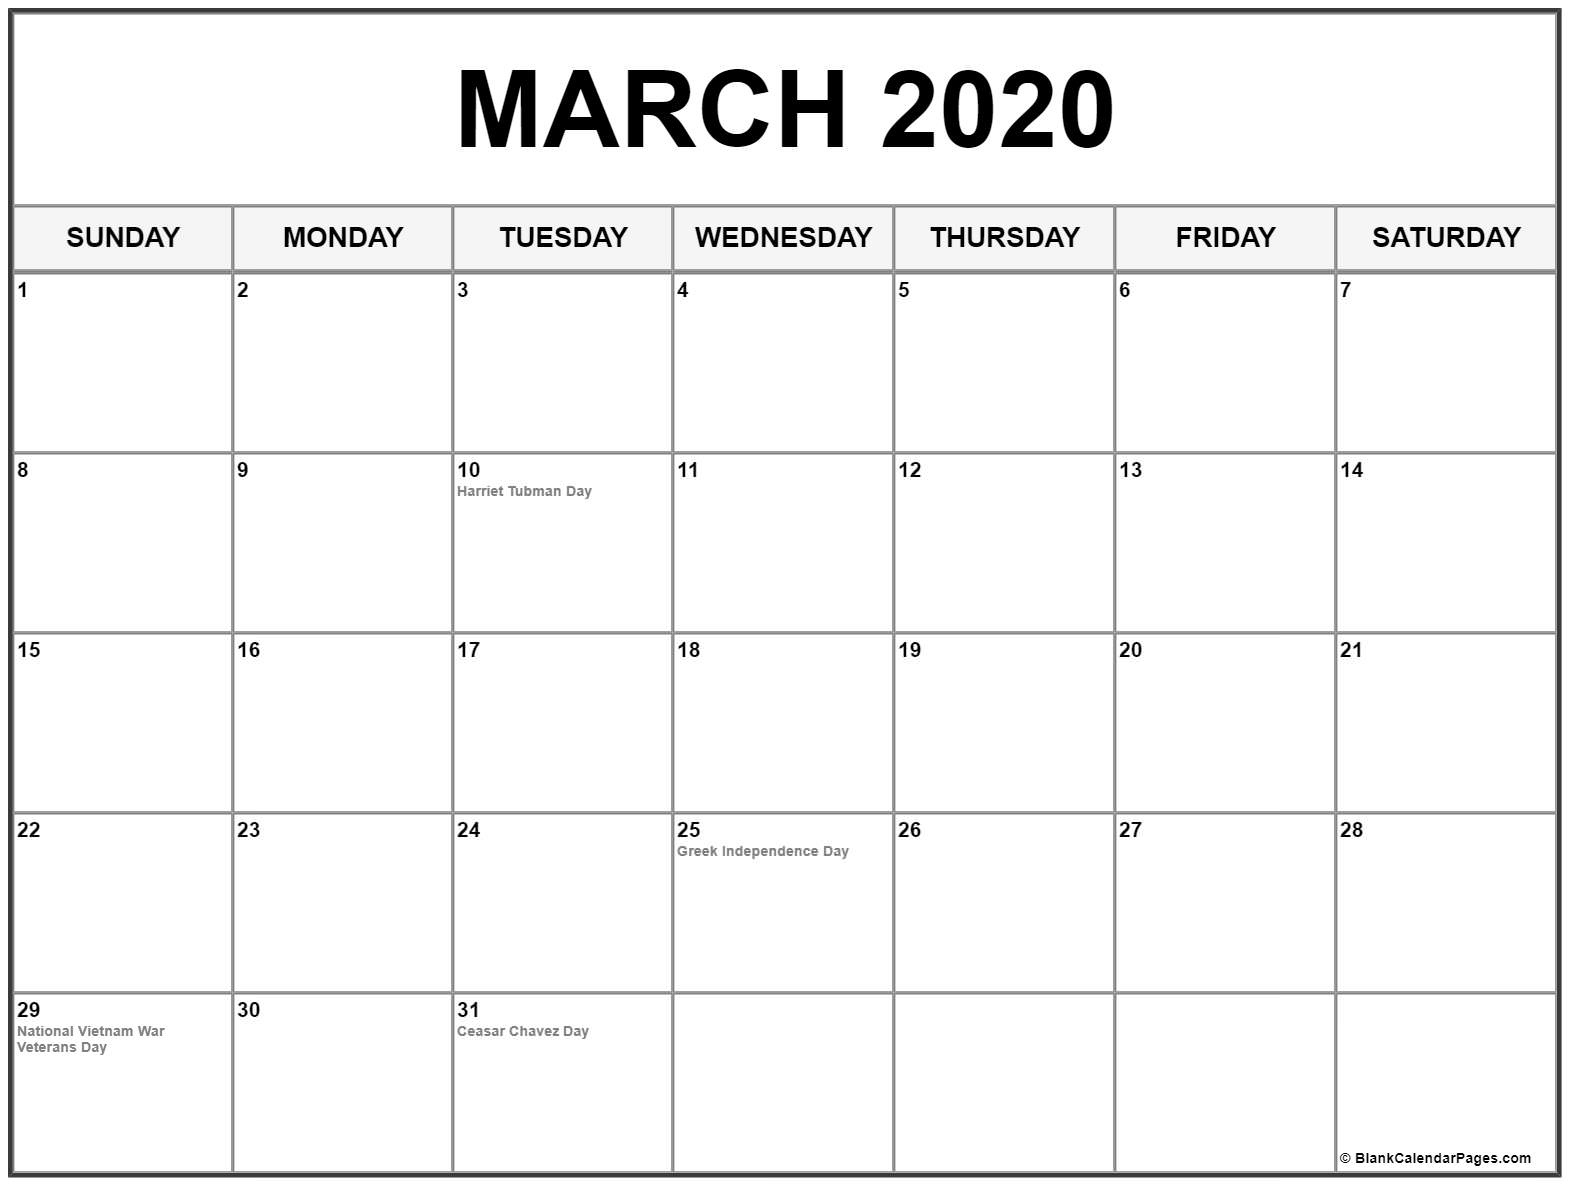 Collection Of March 2020 Calendars With Holidays 2020 Holiday Calendar Federal